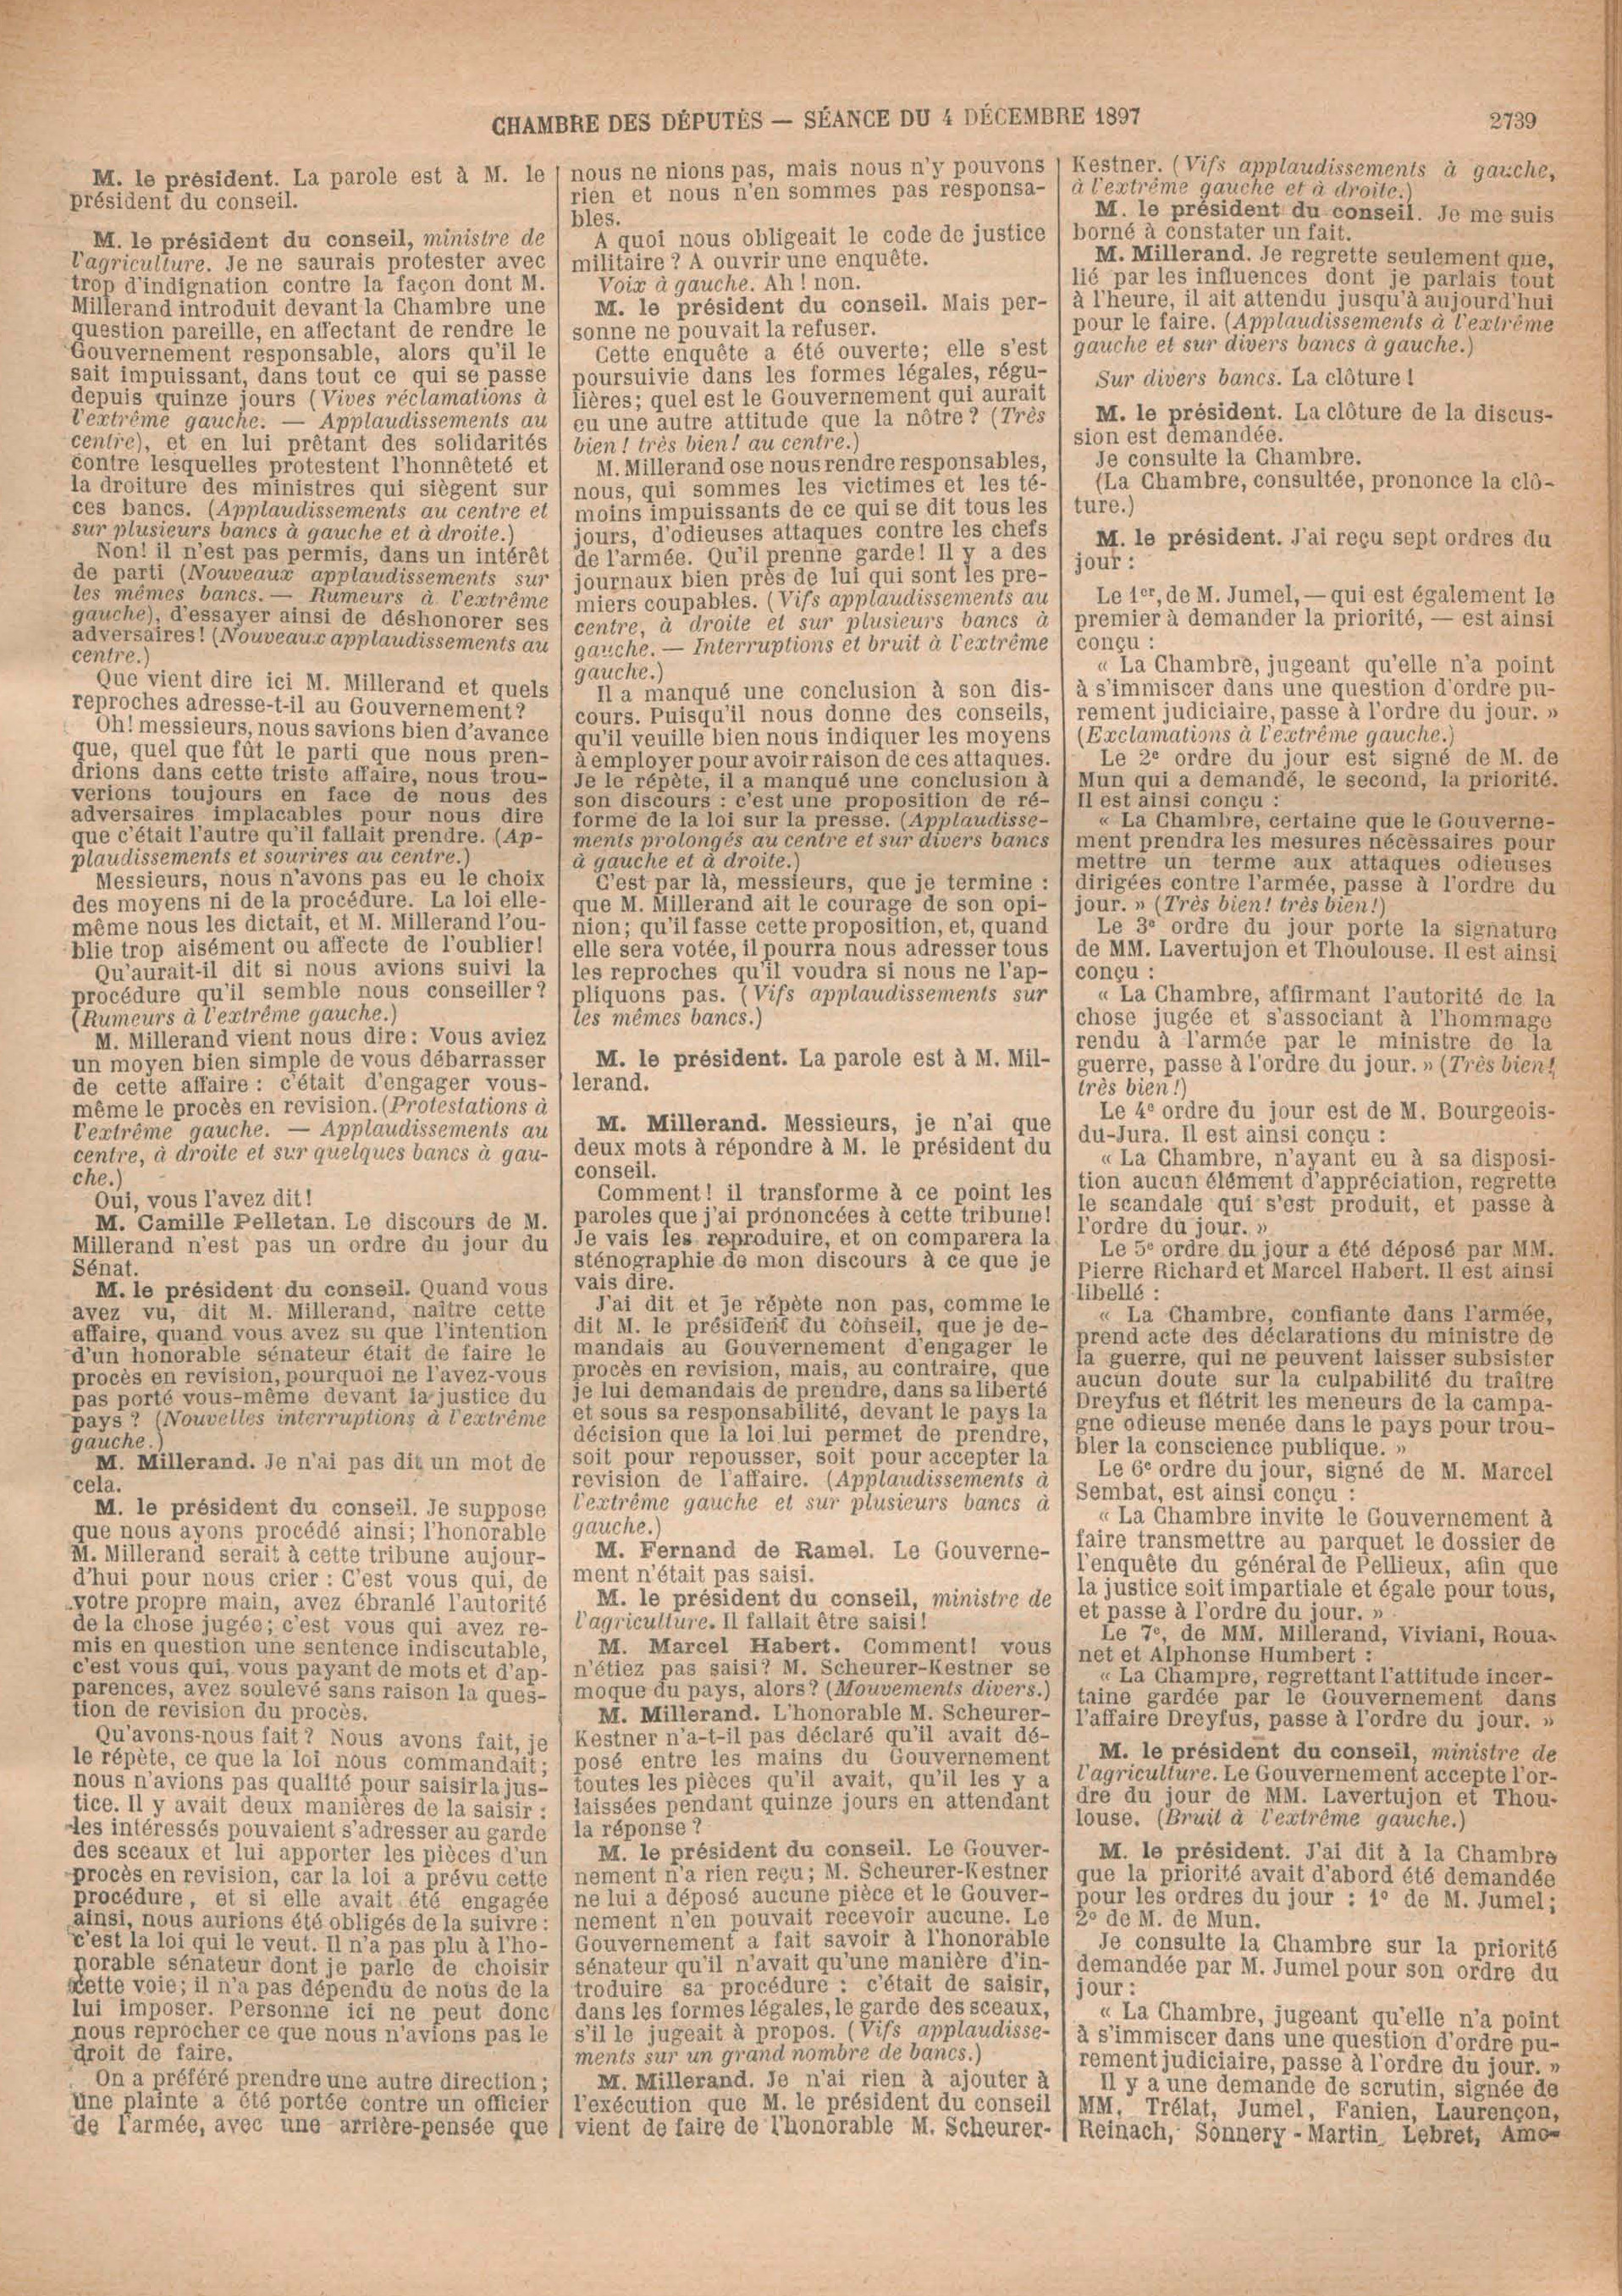 http://expo-paulviollet.univ-paris1.fr/wp-content/uploads/2017/09/Journal_officiel_de_la_République_séance-du-4-décembre-1897_Page_08.jpg